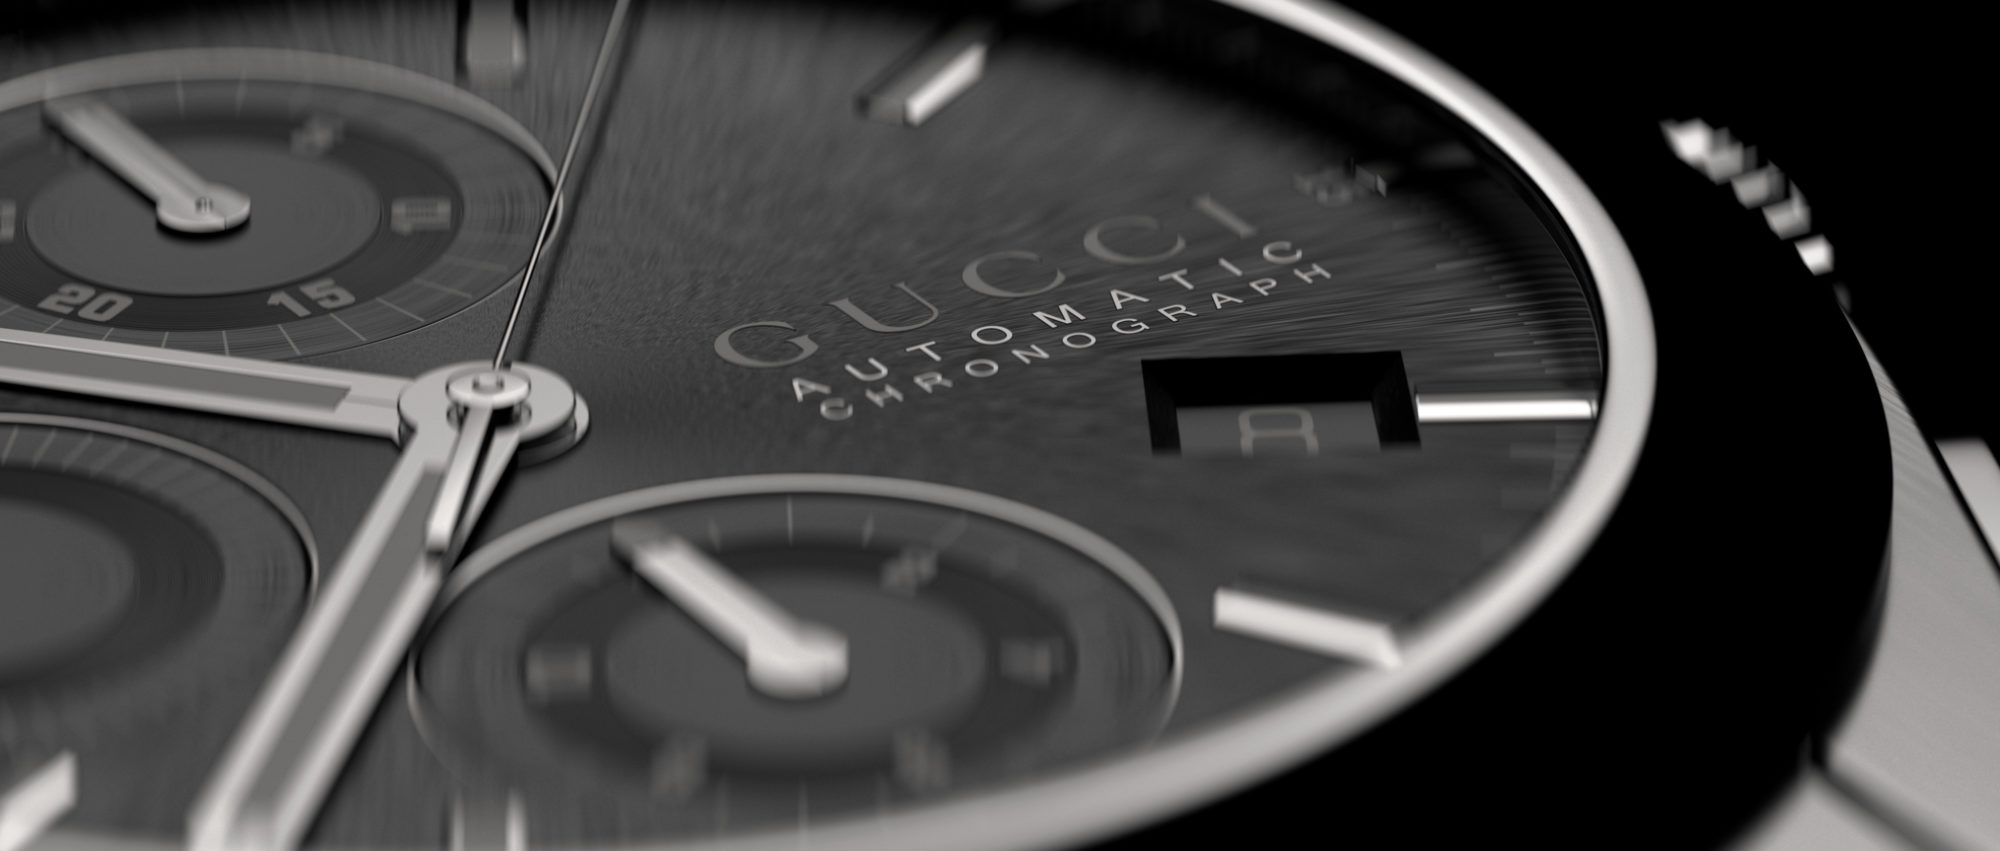 Gucci Watch Face Closeup